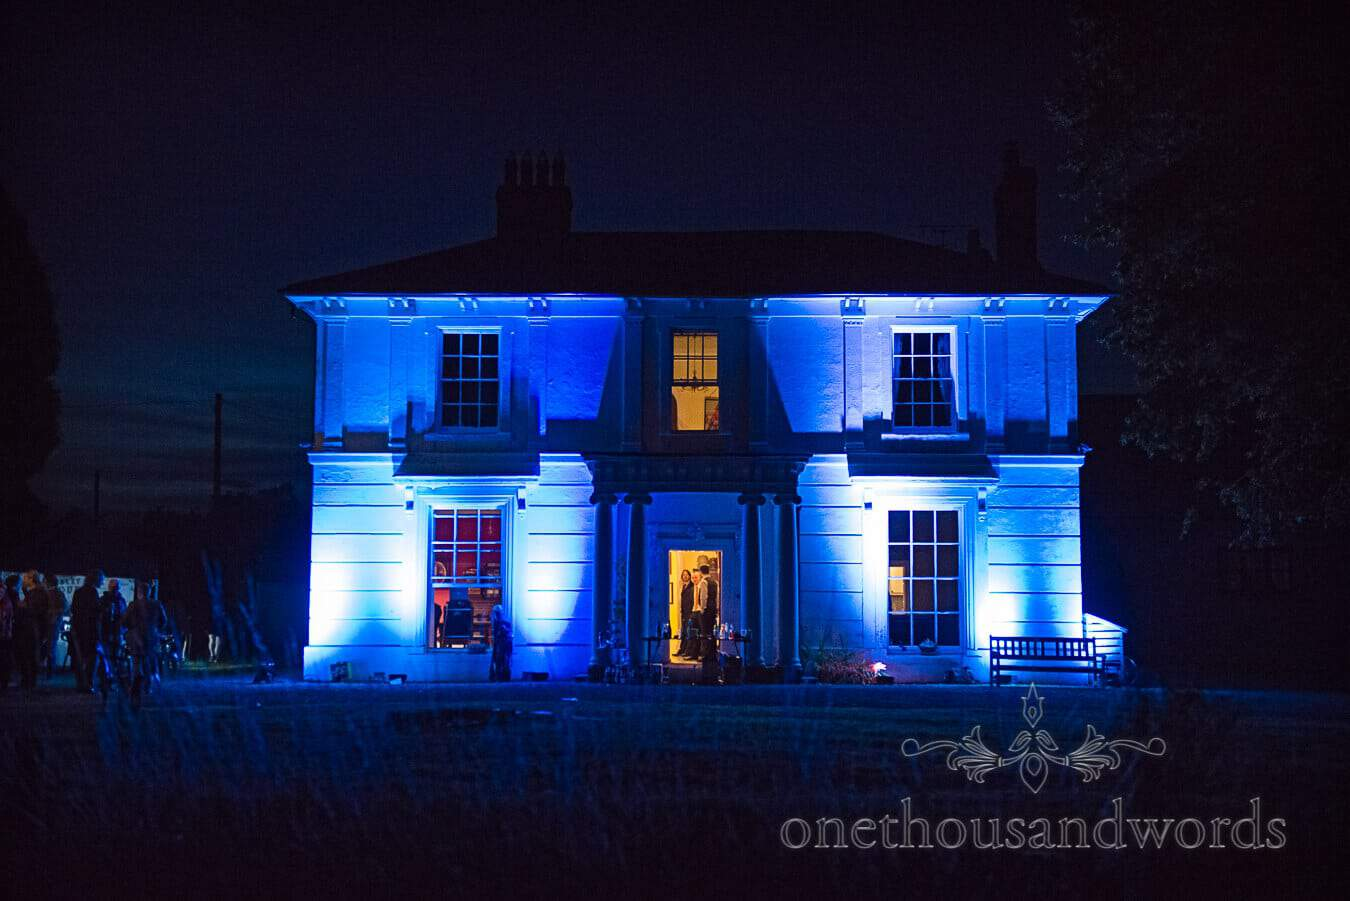 Home Countryside Wedding Venue uplit in blue at night